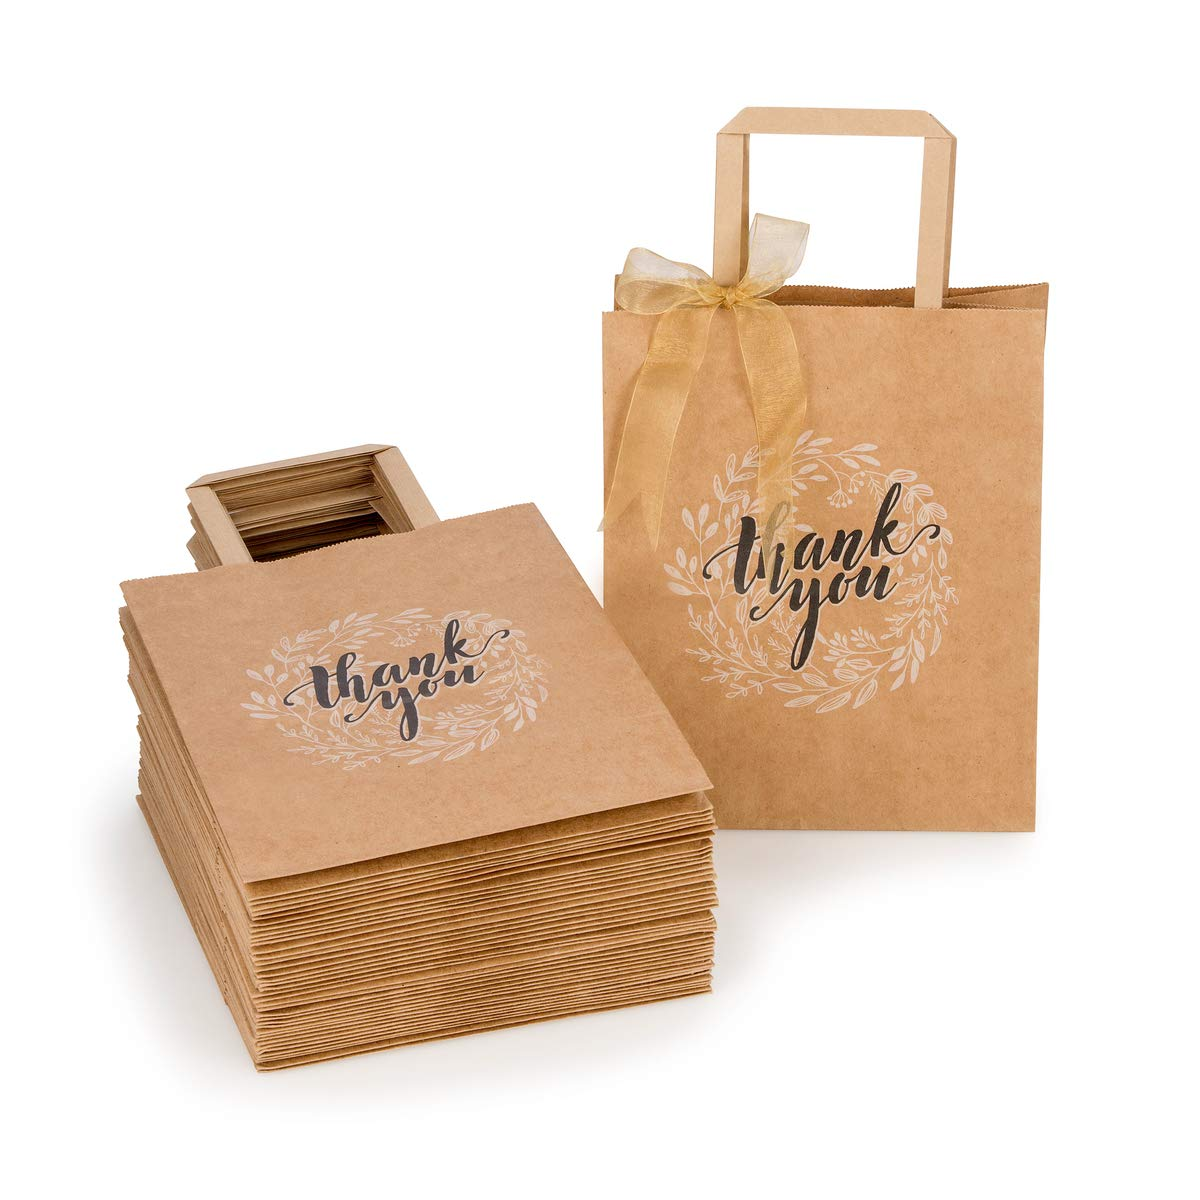 OSpecks Thank You Gift Bags Bulk with Handles (No Bow or Ribbon), Brown Kraft Paper Bags for Retail Shopping, Wedding, Goodies, Merchandise for Customers or Guests, Qty 50 Pcs, Medium 8x4.75x10 Inches by OSpecks